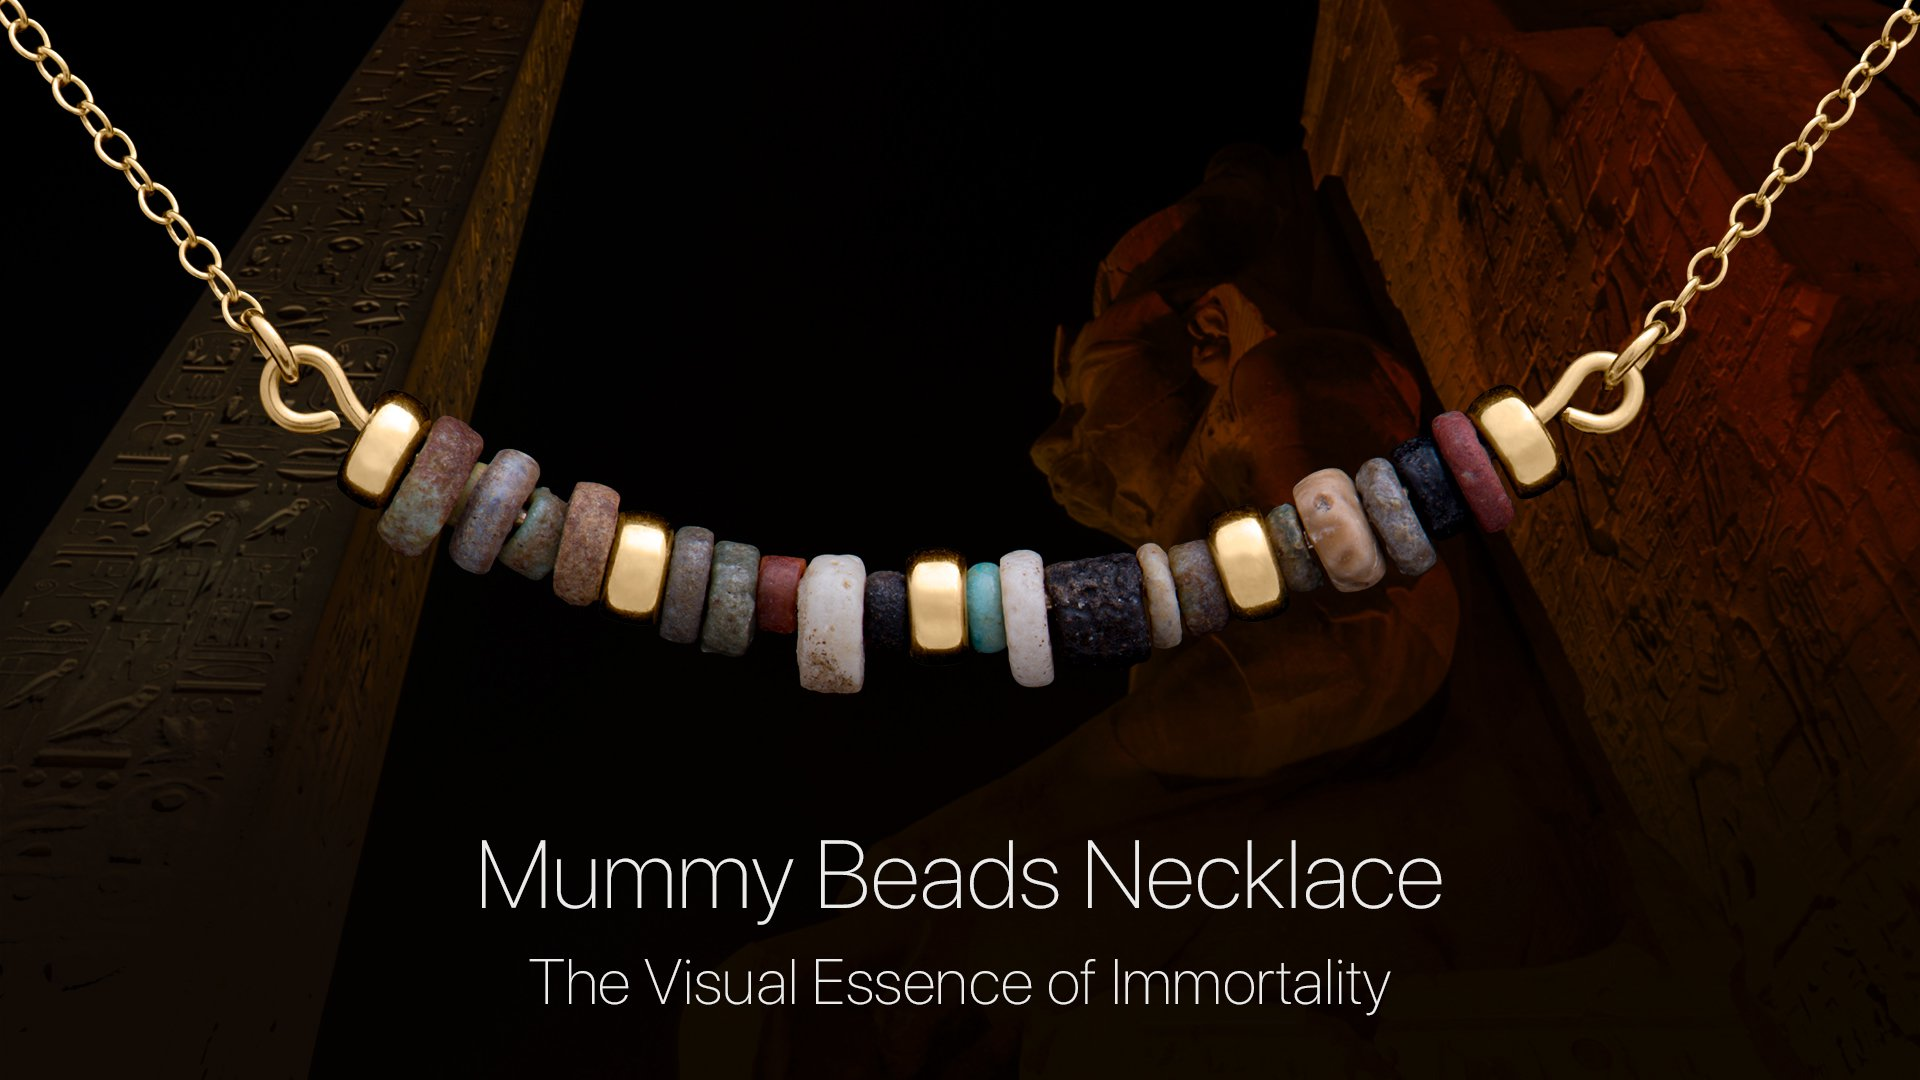 Mummy Beads Necklace